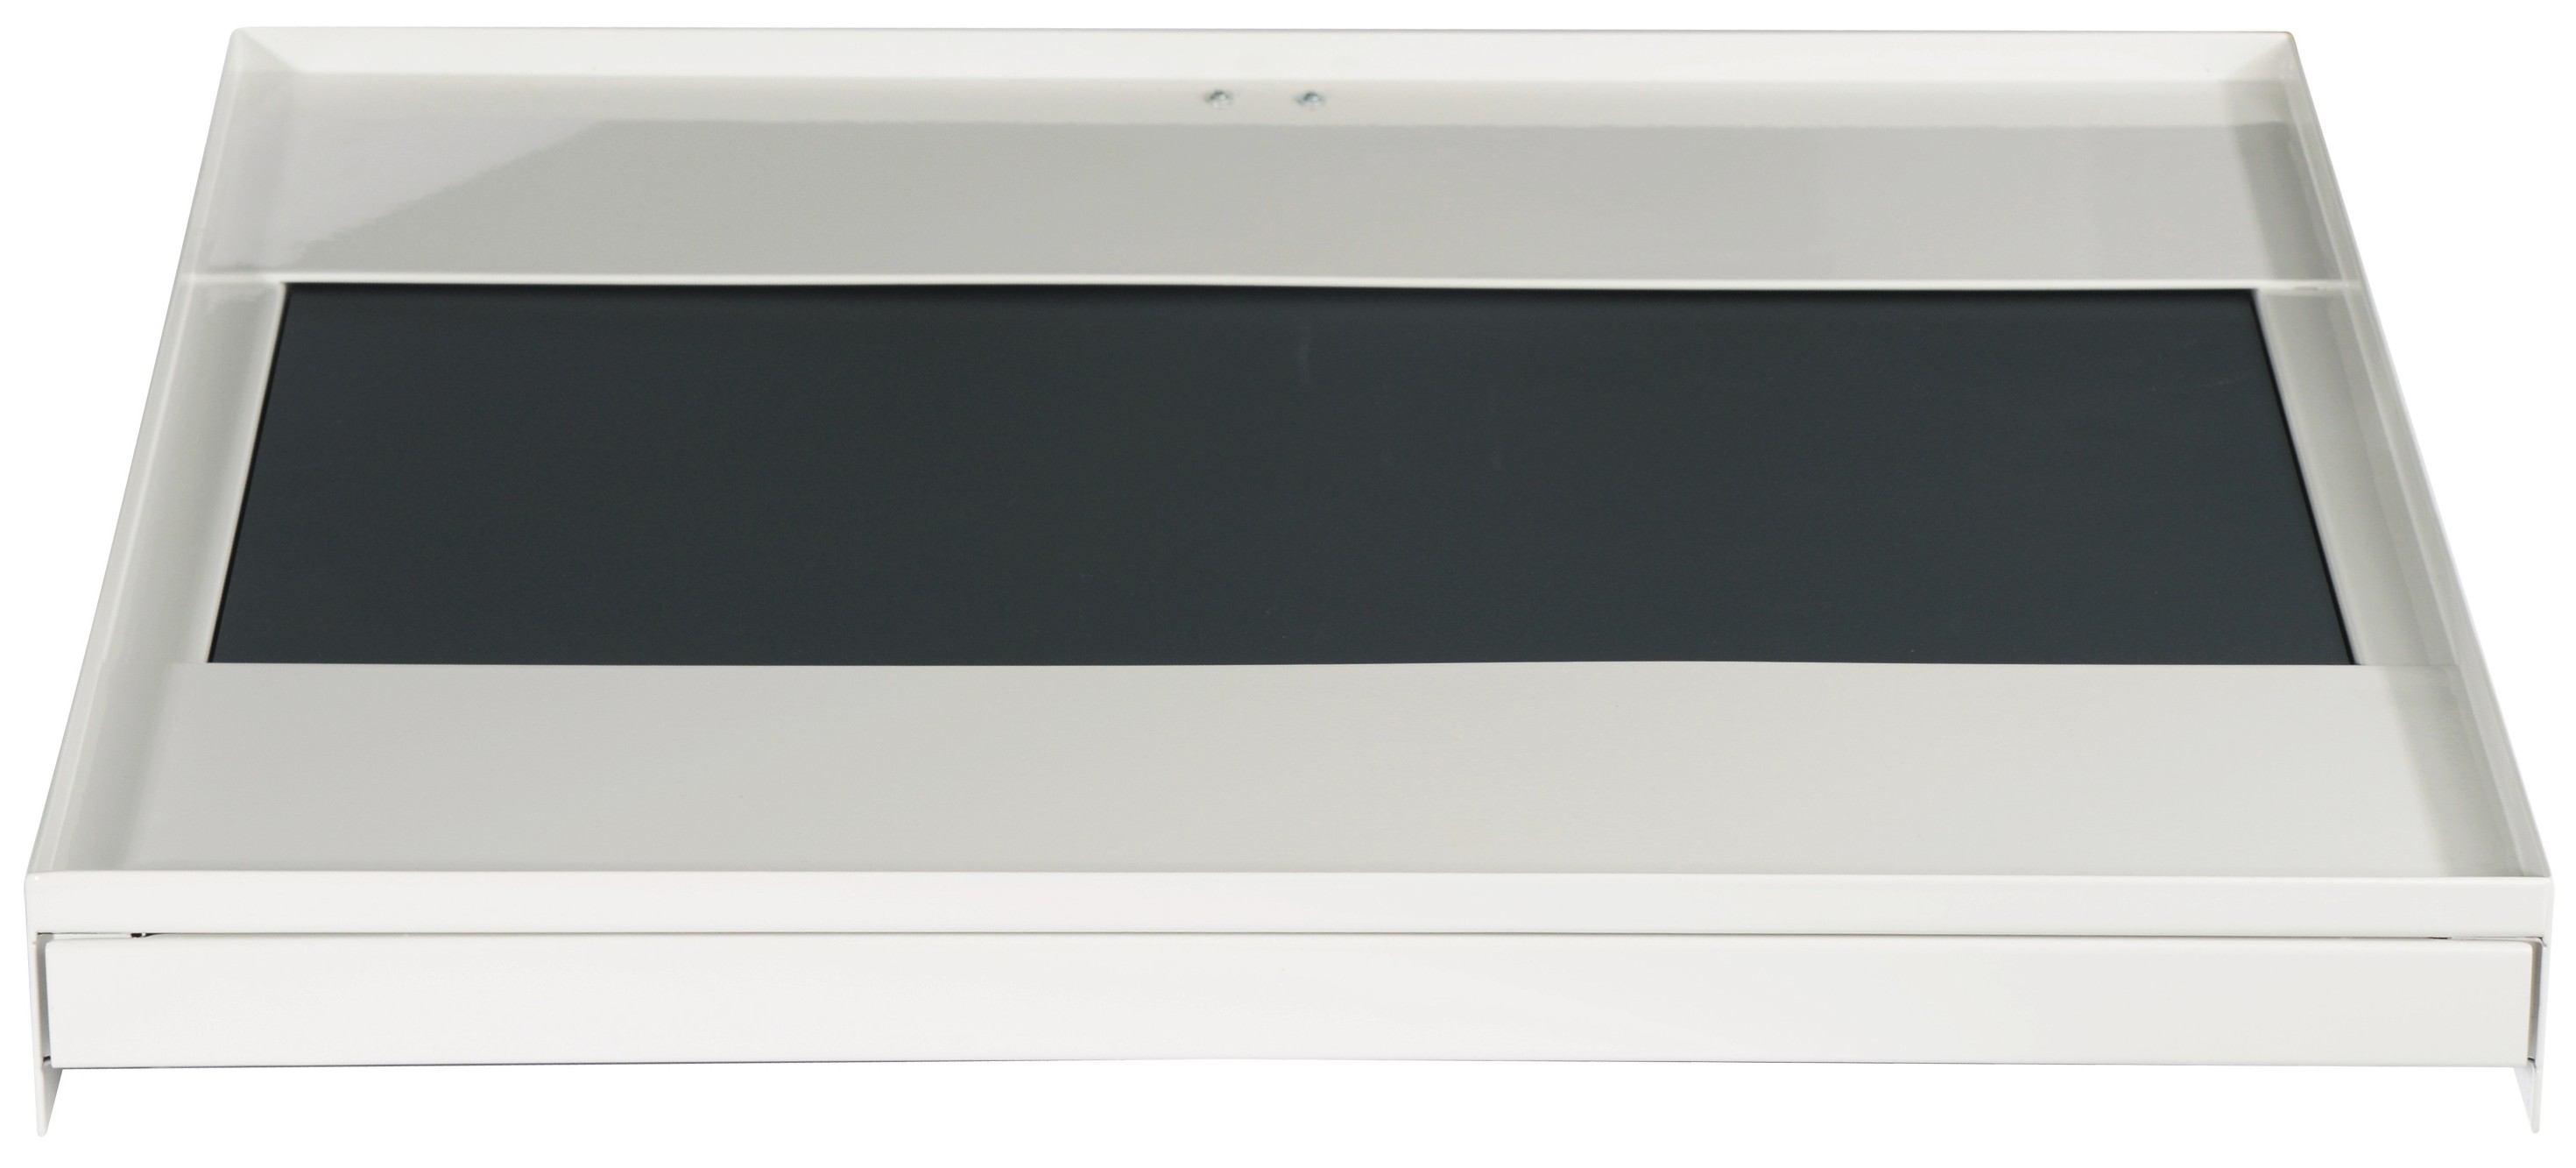 352299 : Nordic Quality stableramme m/hylle